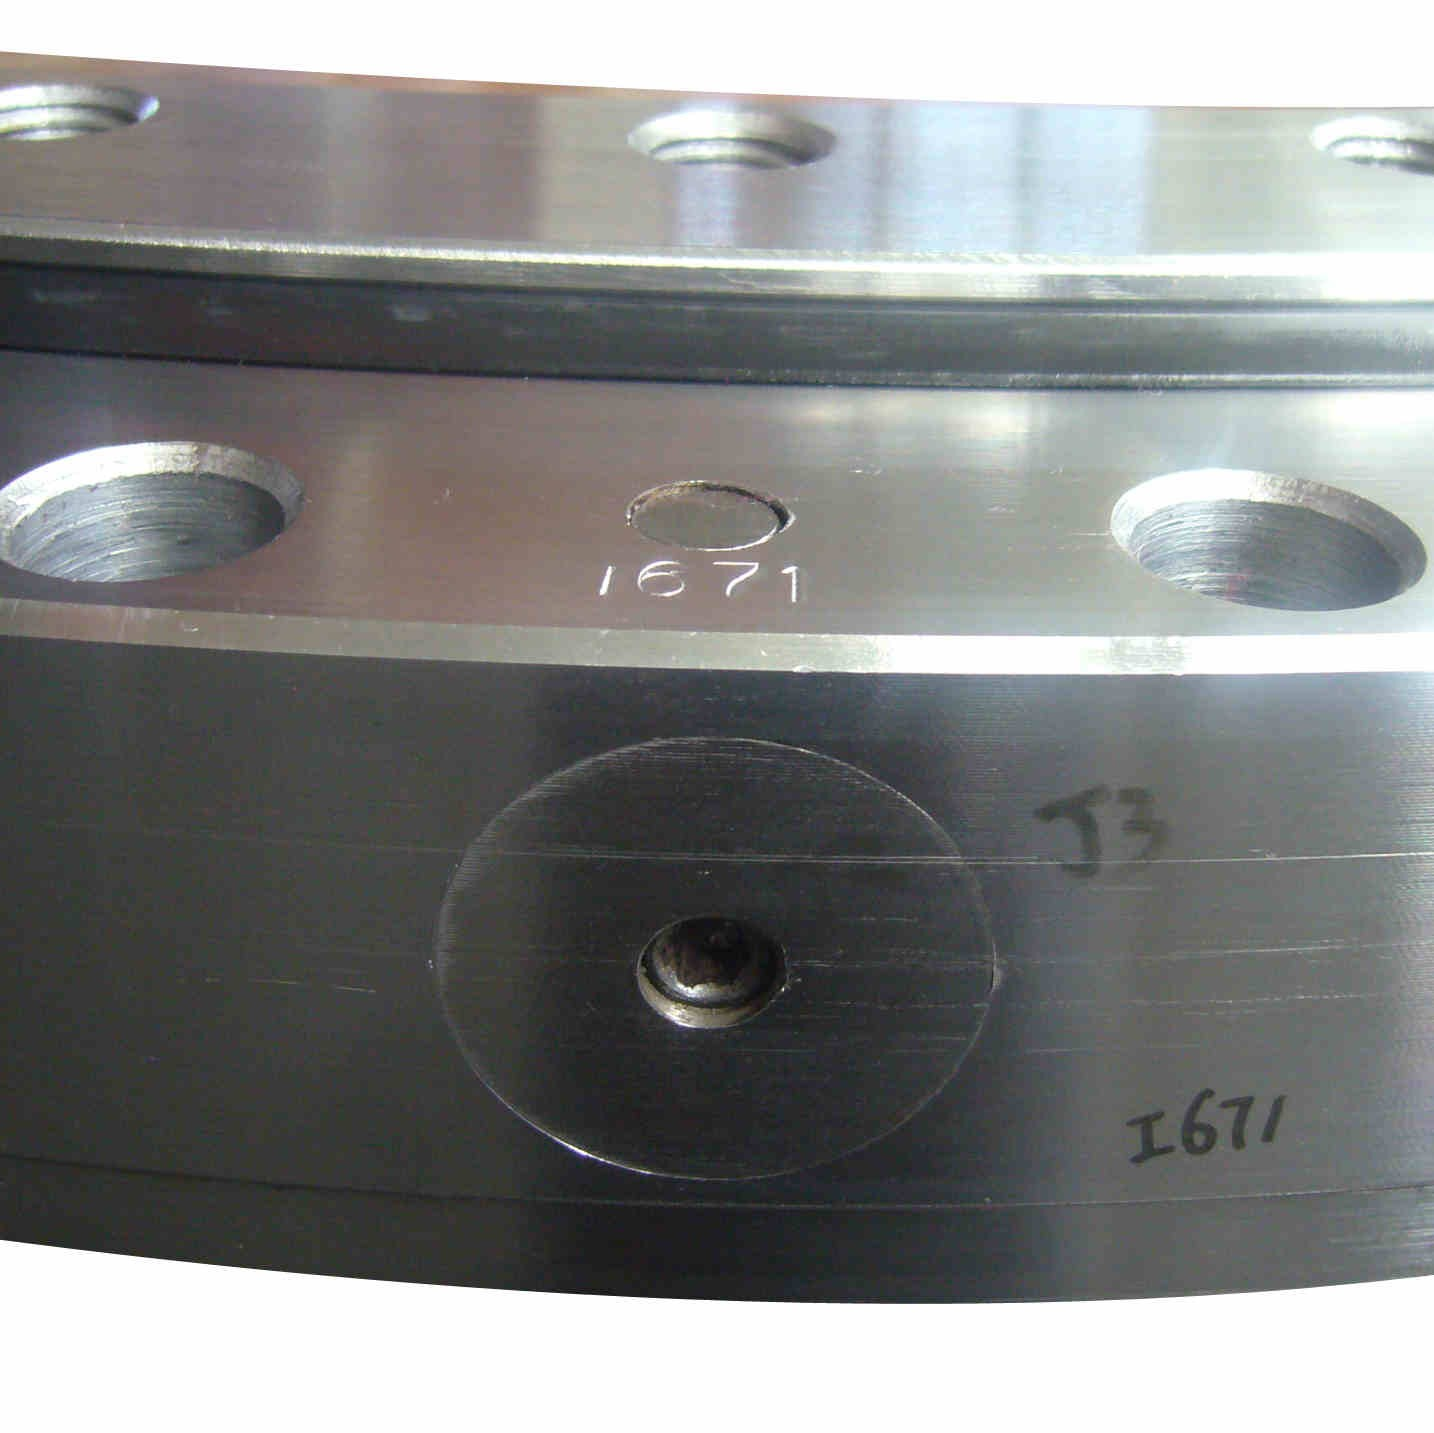 Swing Bearing For Logging And Forestry Equipment Manufacturers, Swing Bearing For Logging And Forestry Equipment Factory, Supply Swing Bearing For Logging And Forestry Equipment